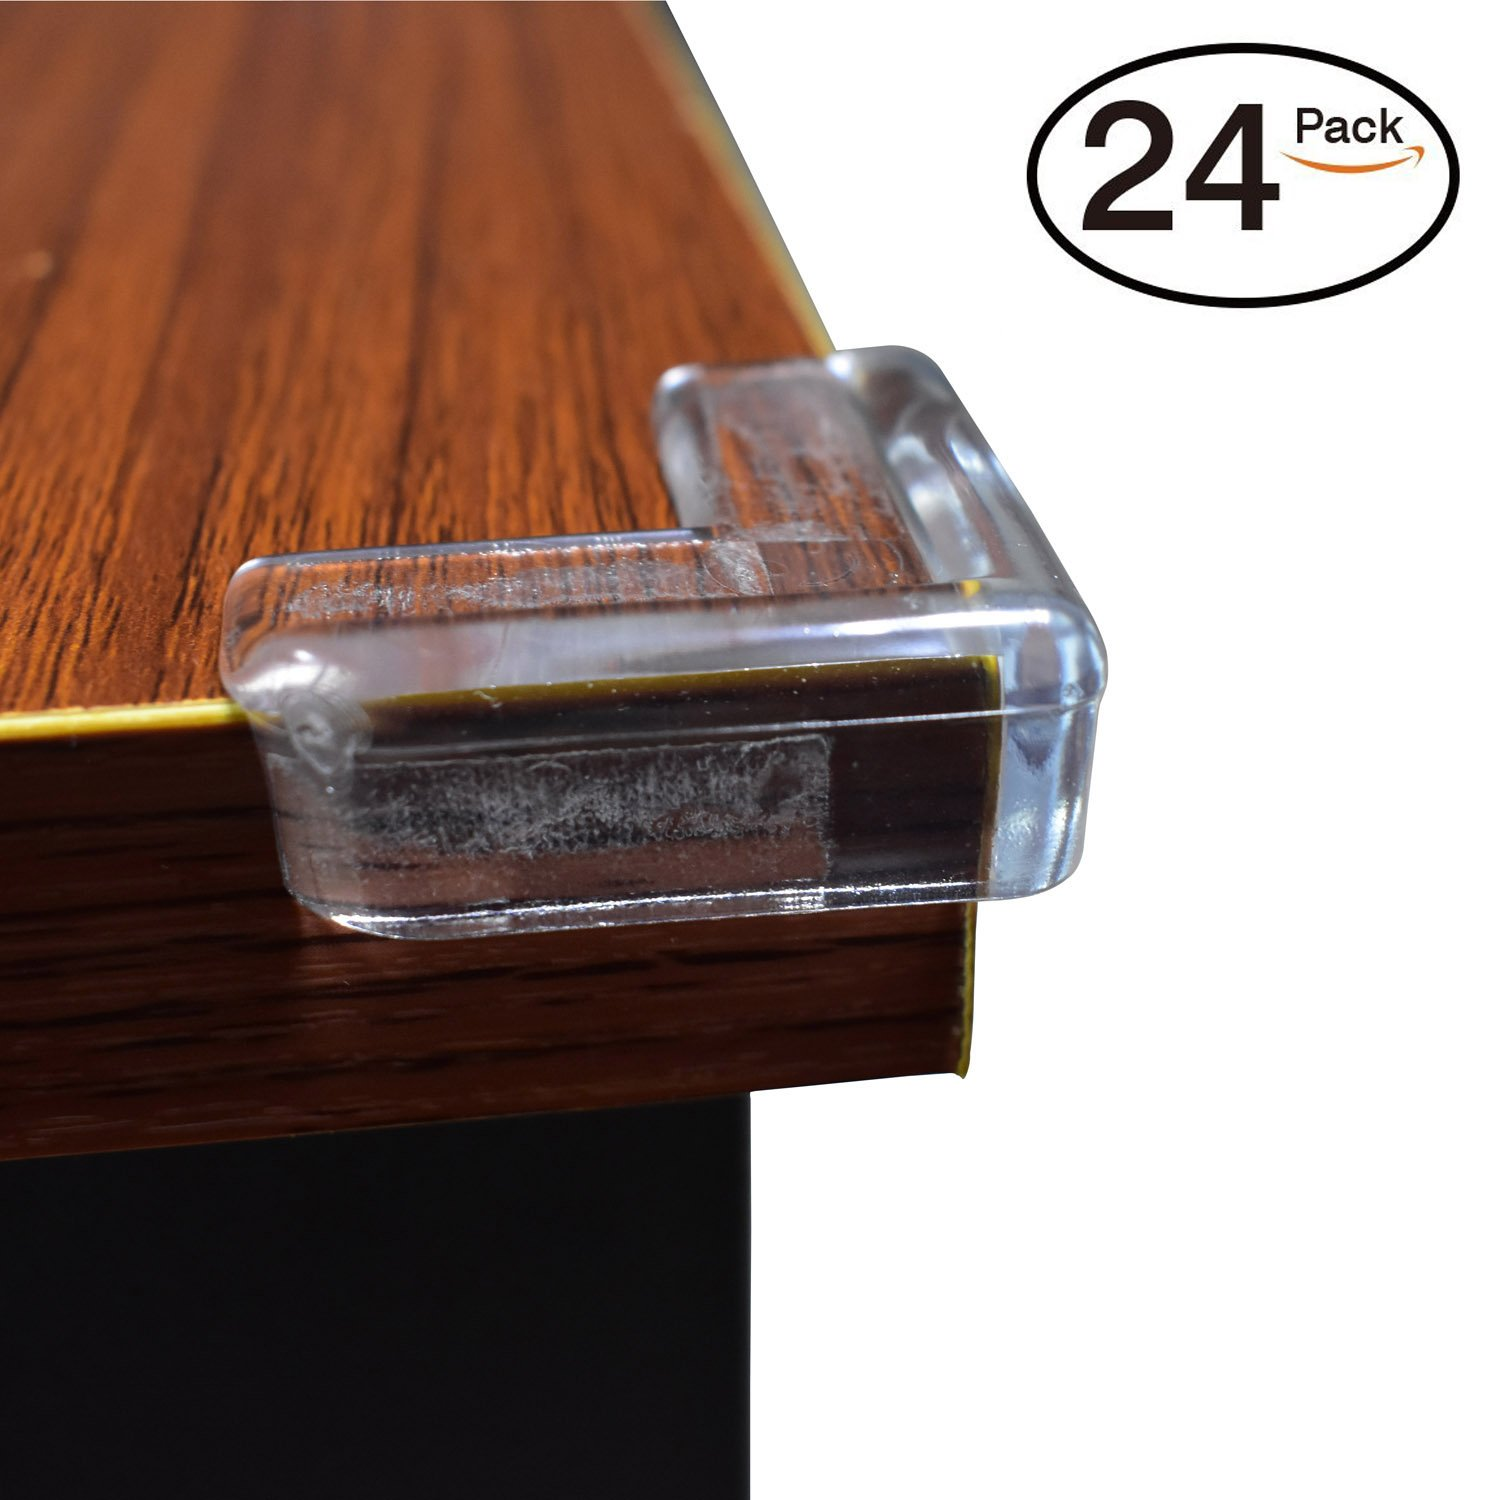 Furniture Corner Guards Protector Edge Safety Bumpers Keep Baby Child Safe, Stop Head Injuries, Protectors for Furniture Against Sharp Corners, Triangle Shaped